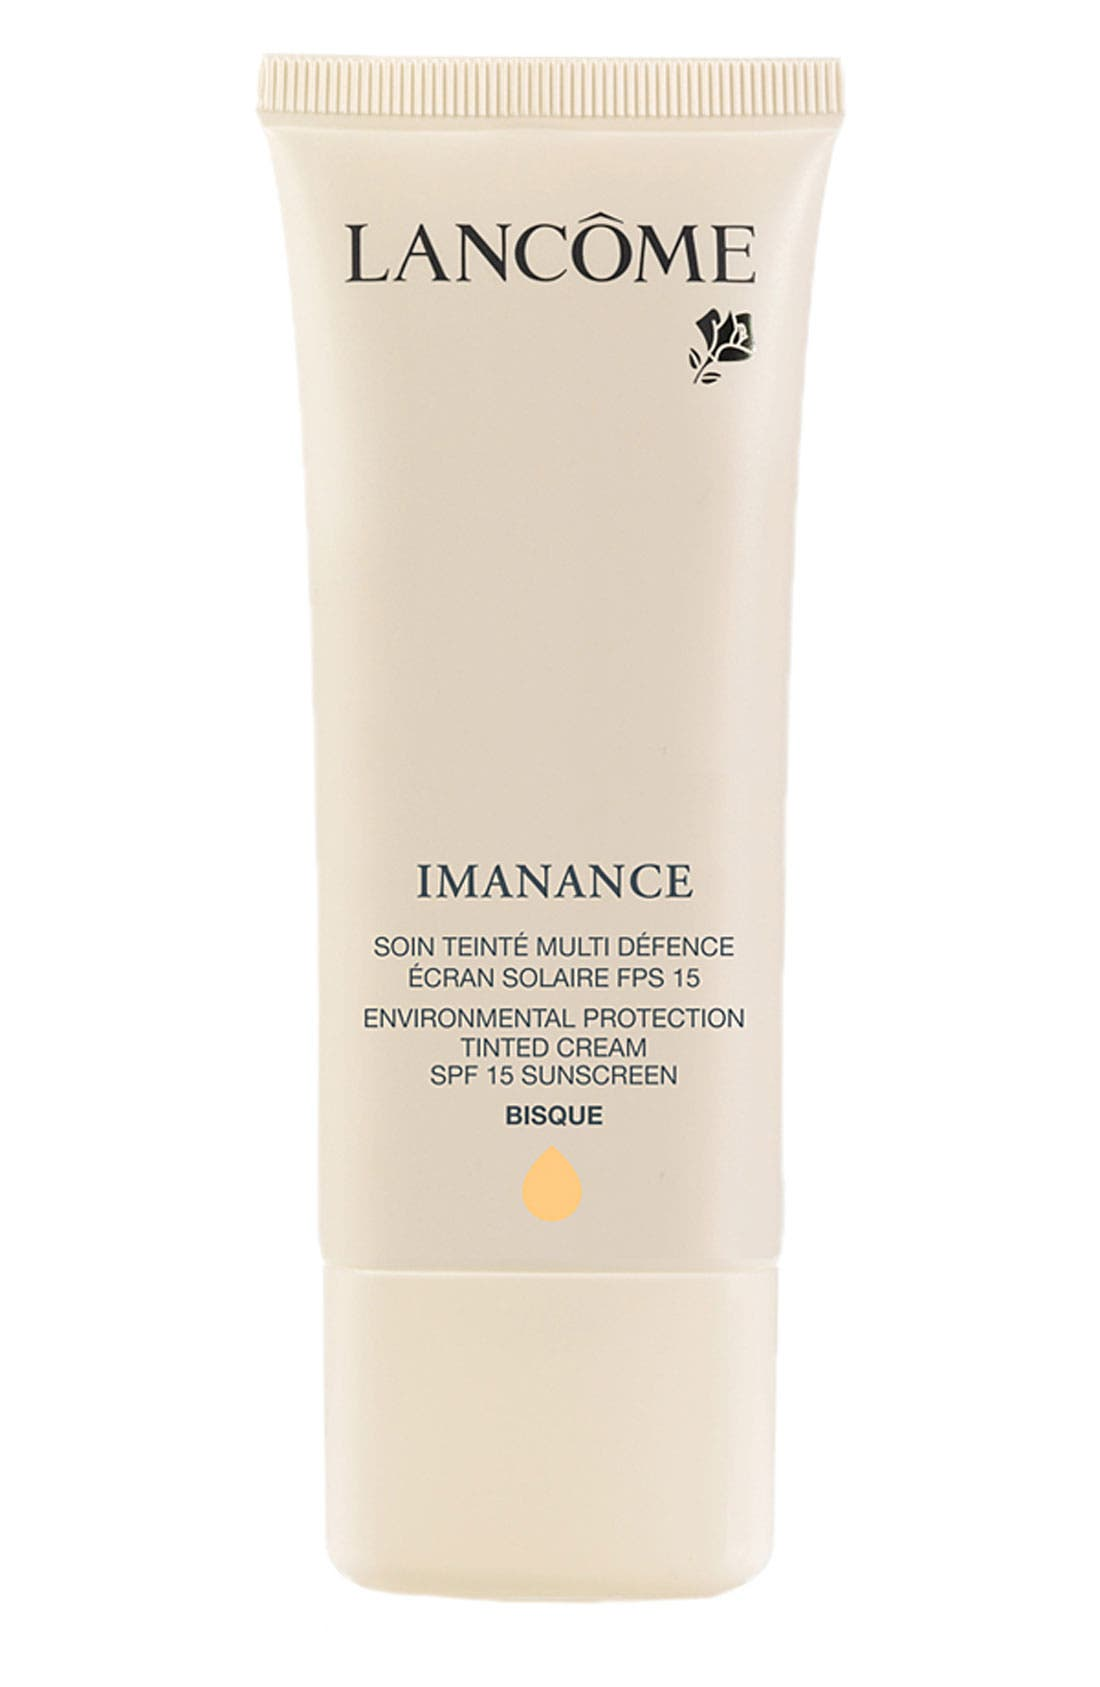 Imanance Tinted Day Creme SPF 15,                             Main thumbnail 1, color,                             BISQUE